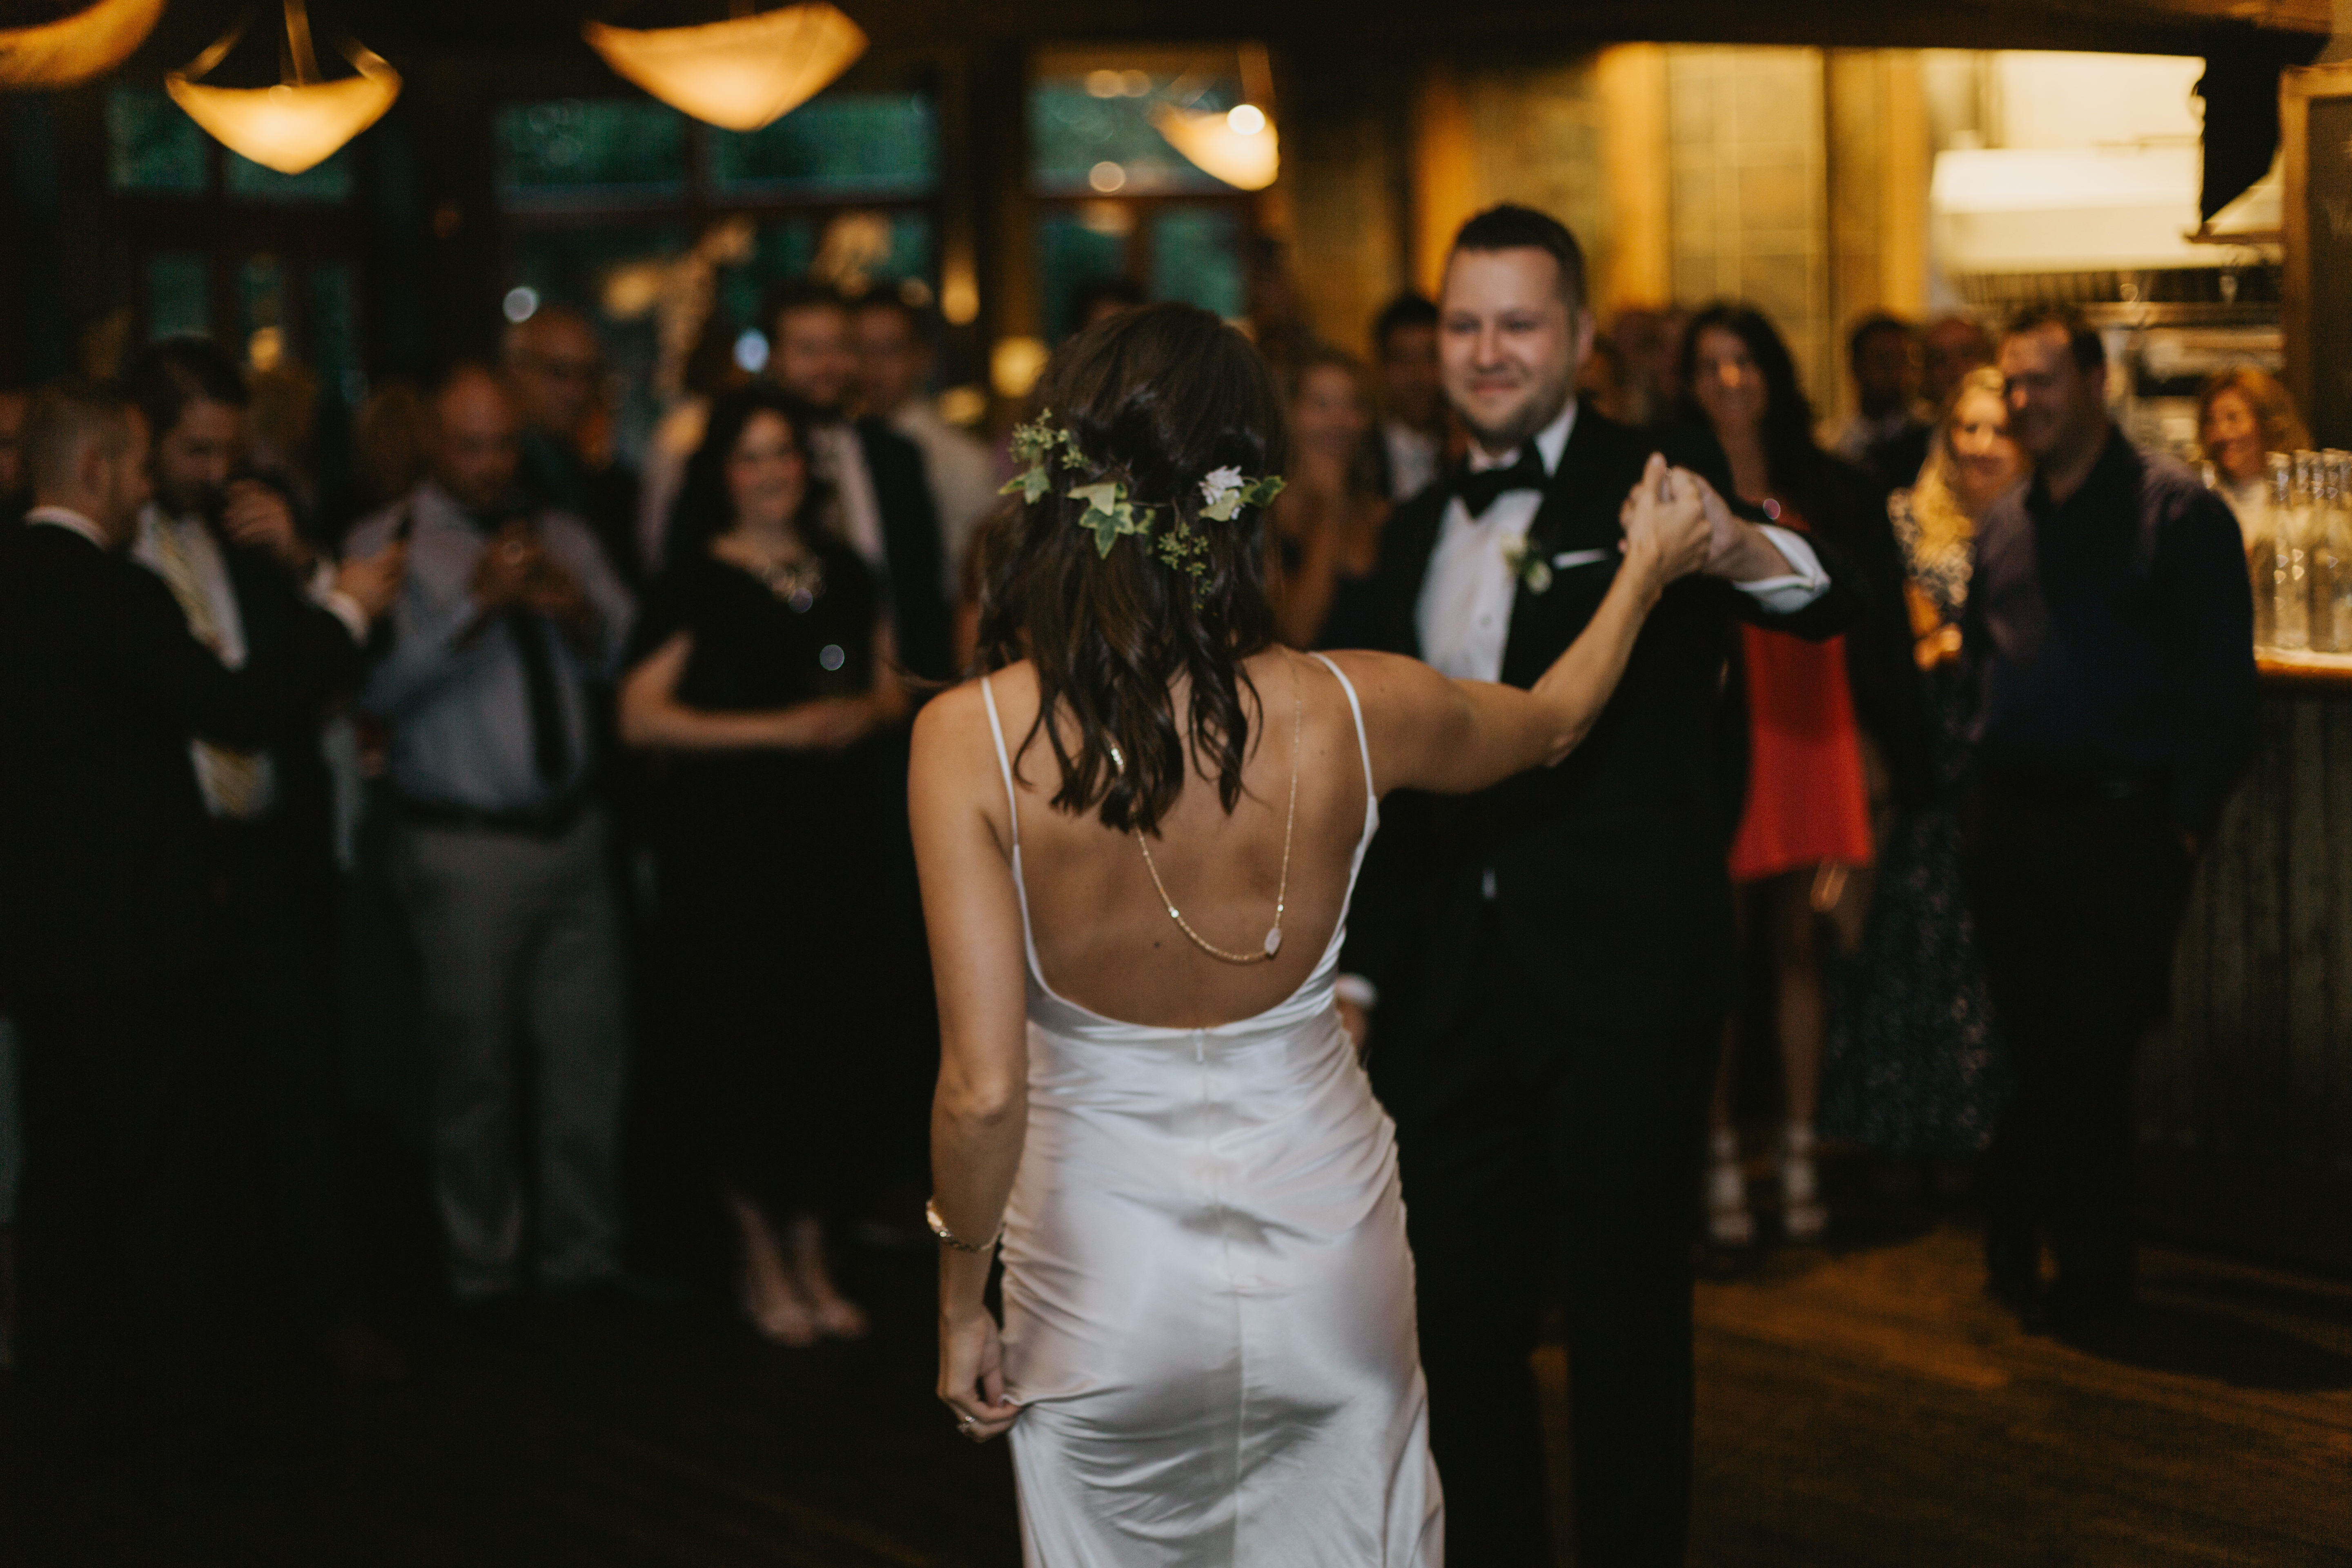 the bride and groom share their first dance